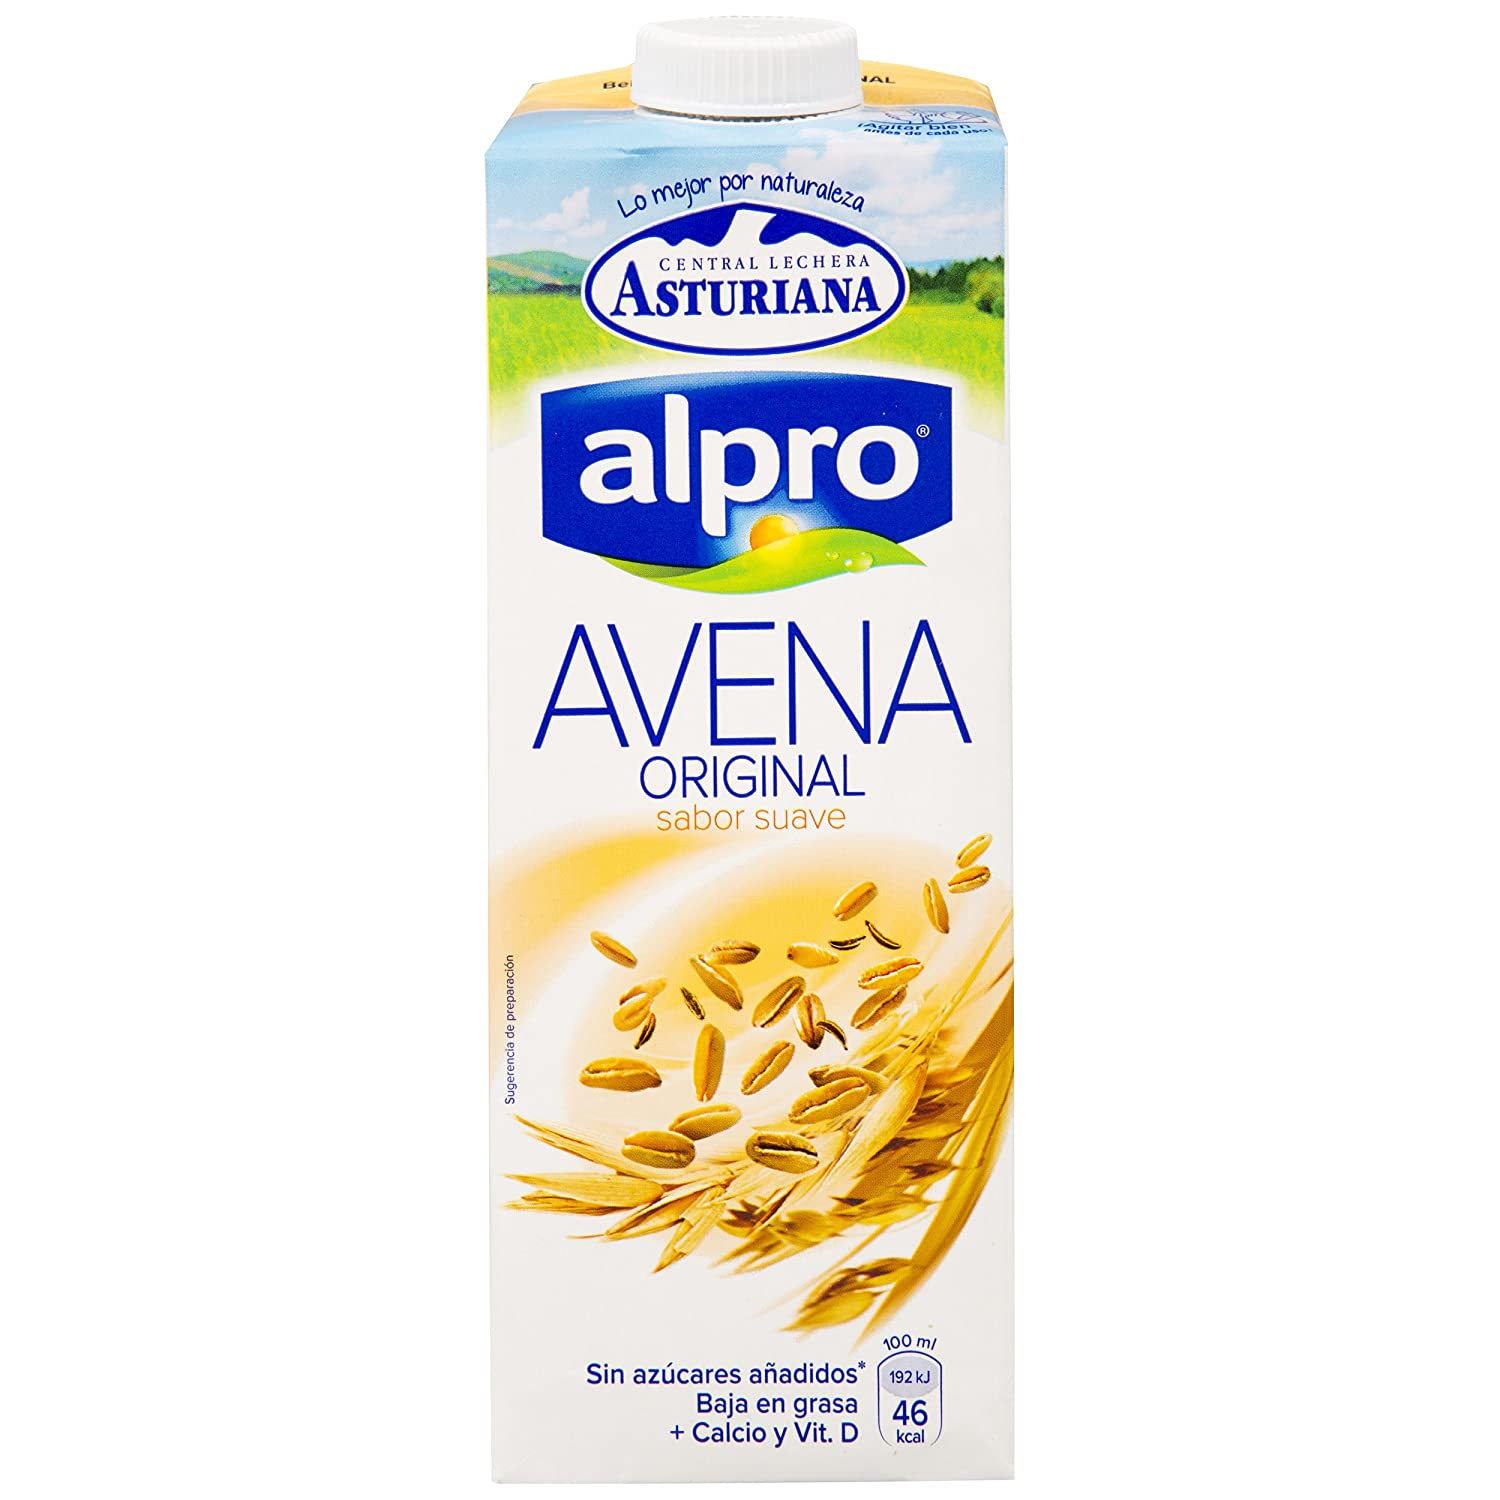 Alpro Central Lechera Asturiana Bebida de Avena - Paquete de 6 x 1000 ml - Total: 6000 ml: Amazon.es: Amazon Pantry